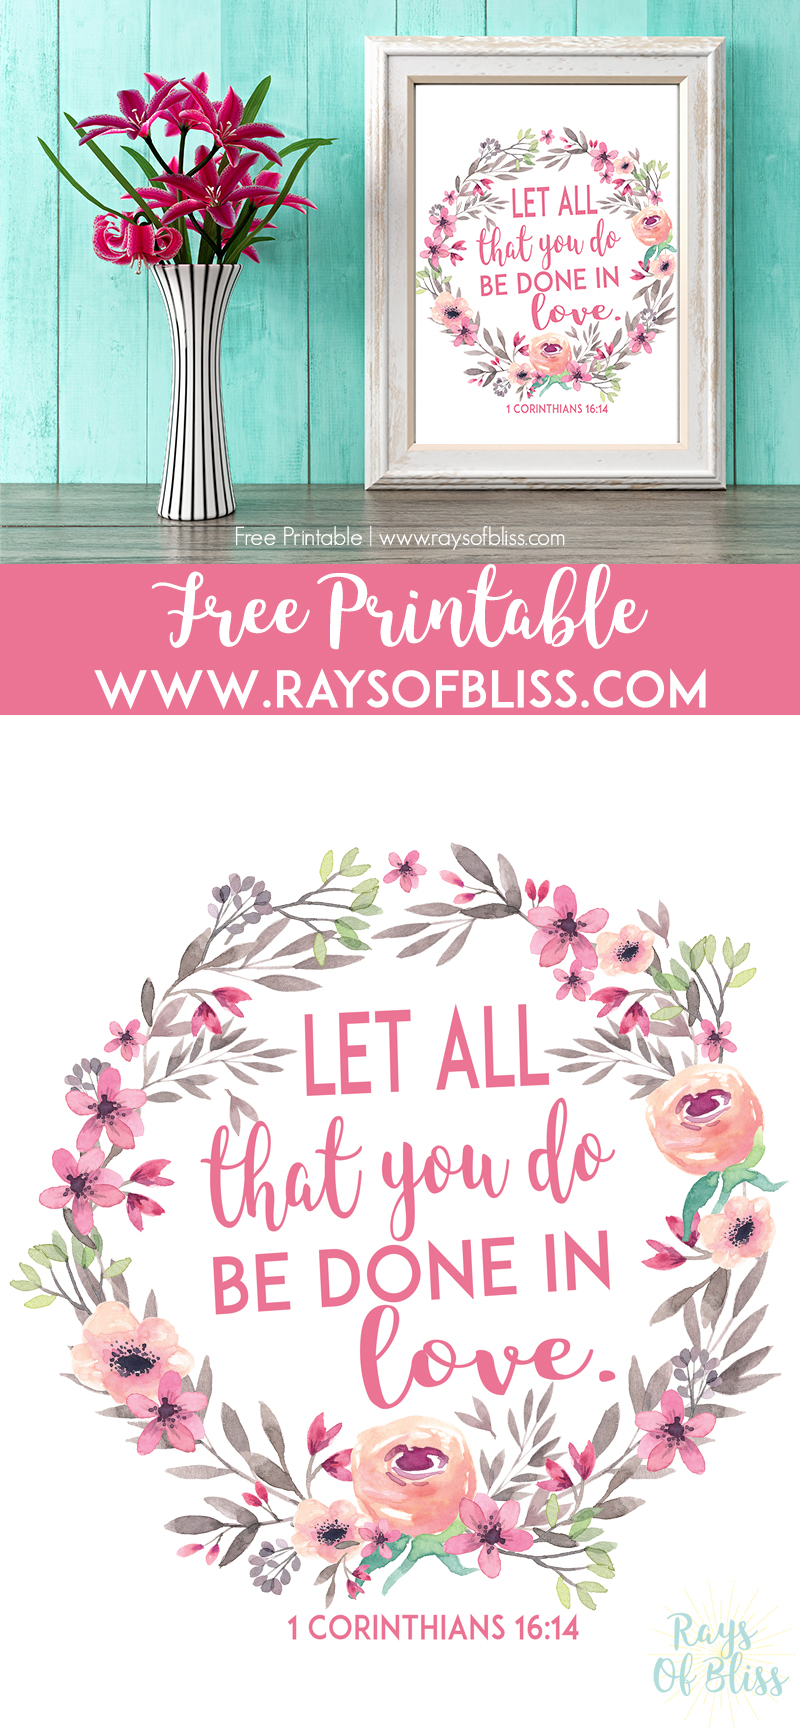 graphic regarding Free Printable Bible Verses to Frame named Children Bible Verses No cost Printables - Fastened of 4 - Rays of Bliss